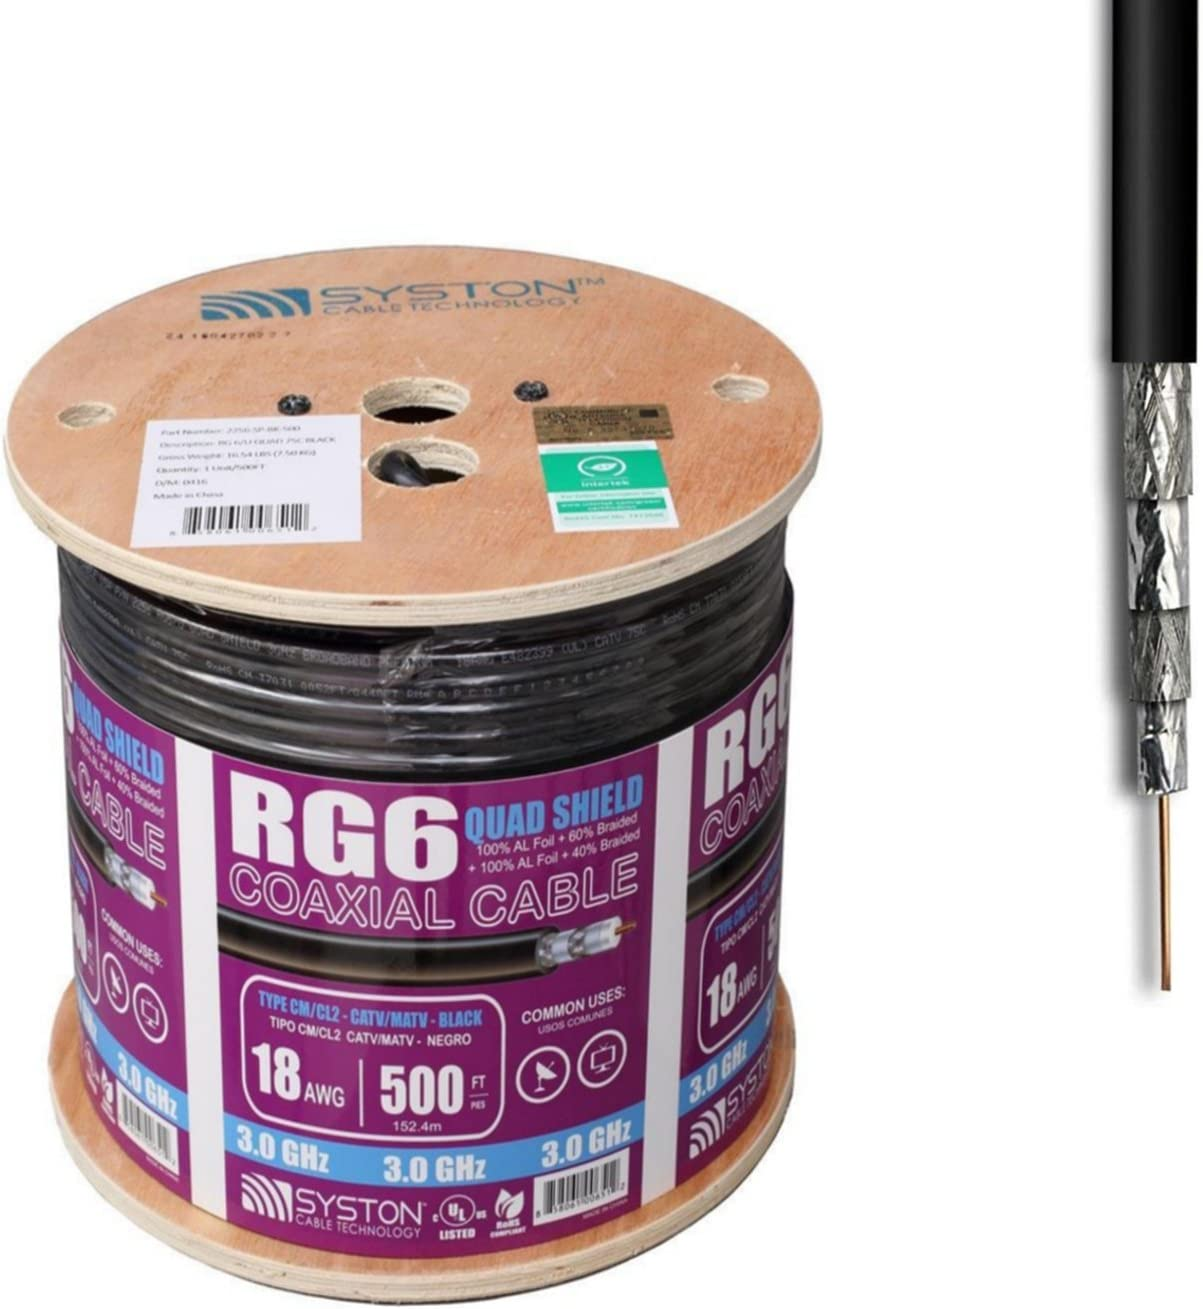 Cable coaxial RG6 Quad Shield de 500 pies, color negro: Amazon.es ...